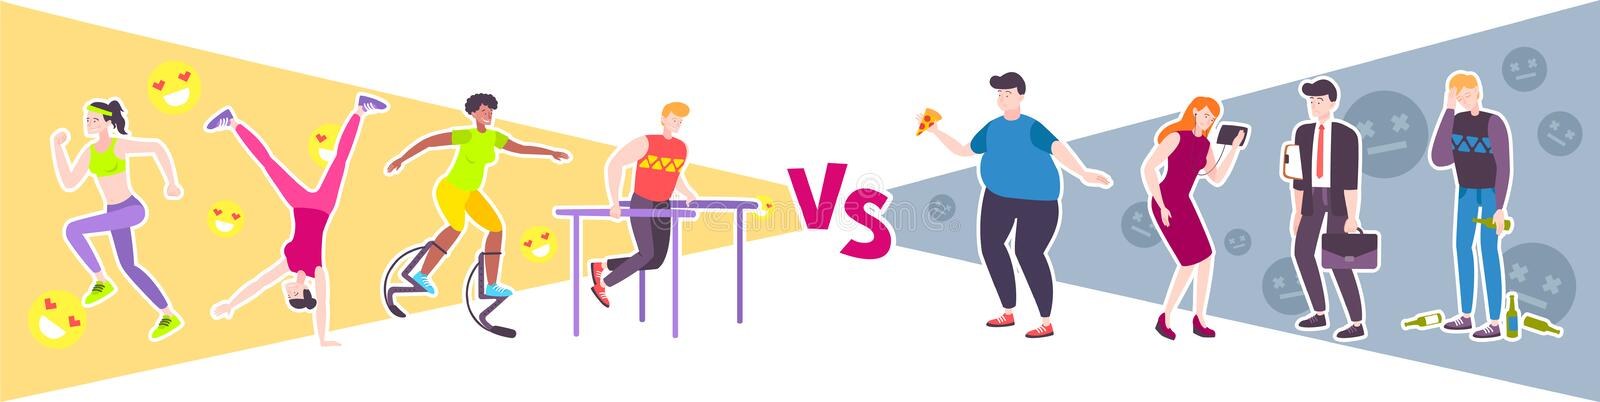 Sport vs Lazy Design Concept. With people leading unhealthy lifestyle and group of athletes engaged in workout flat vector illustration royalty free illustration